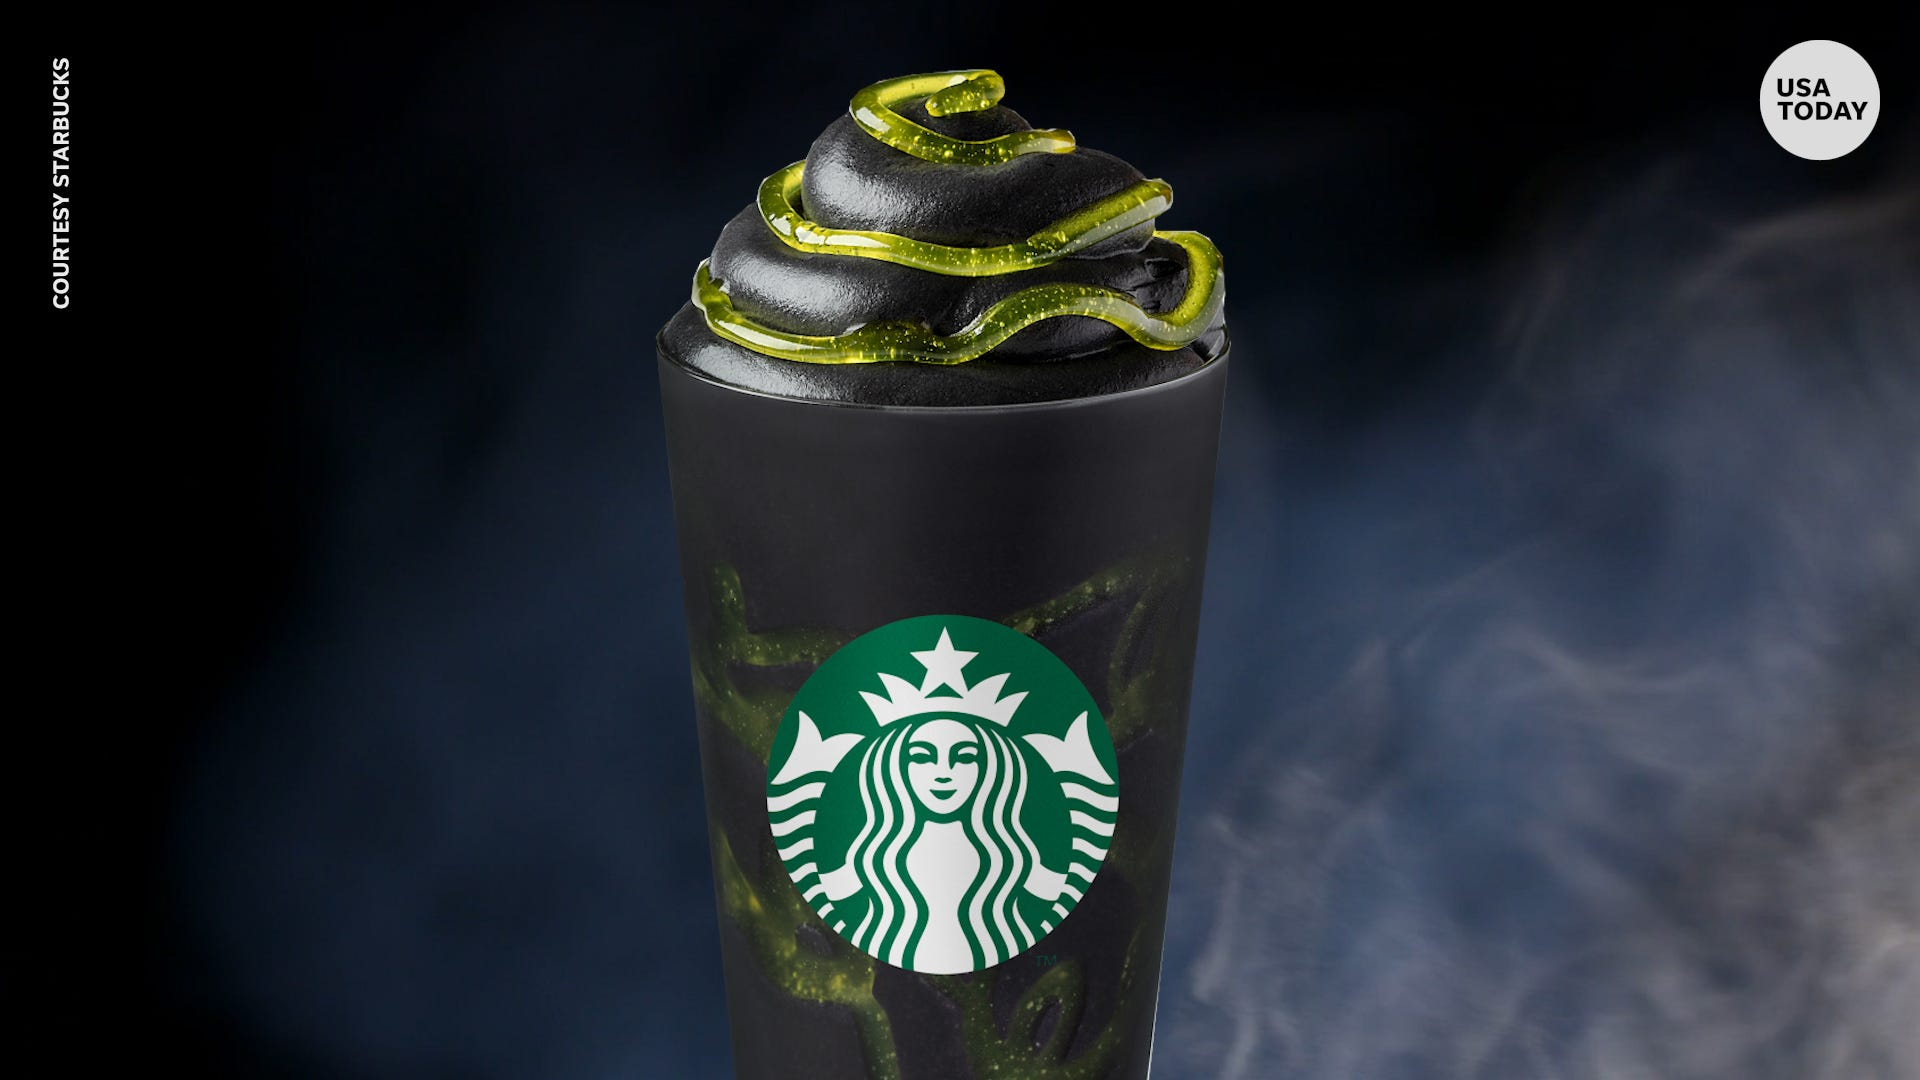 Starbucks Halloween 2020 Usa Starbucks Phantom Frappuccino: Where to find the Halloween drink, more